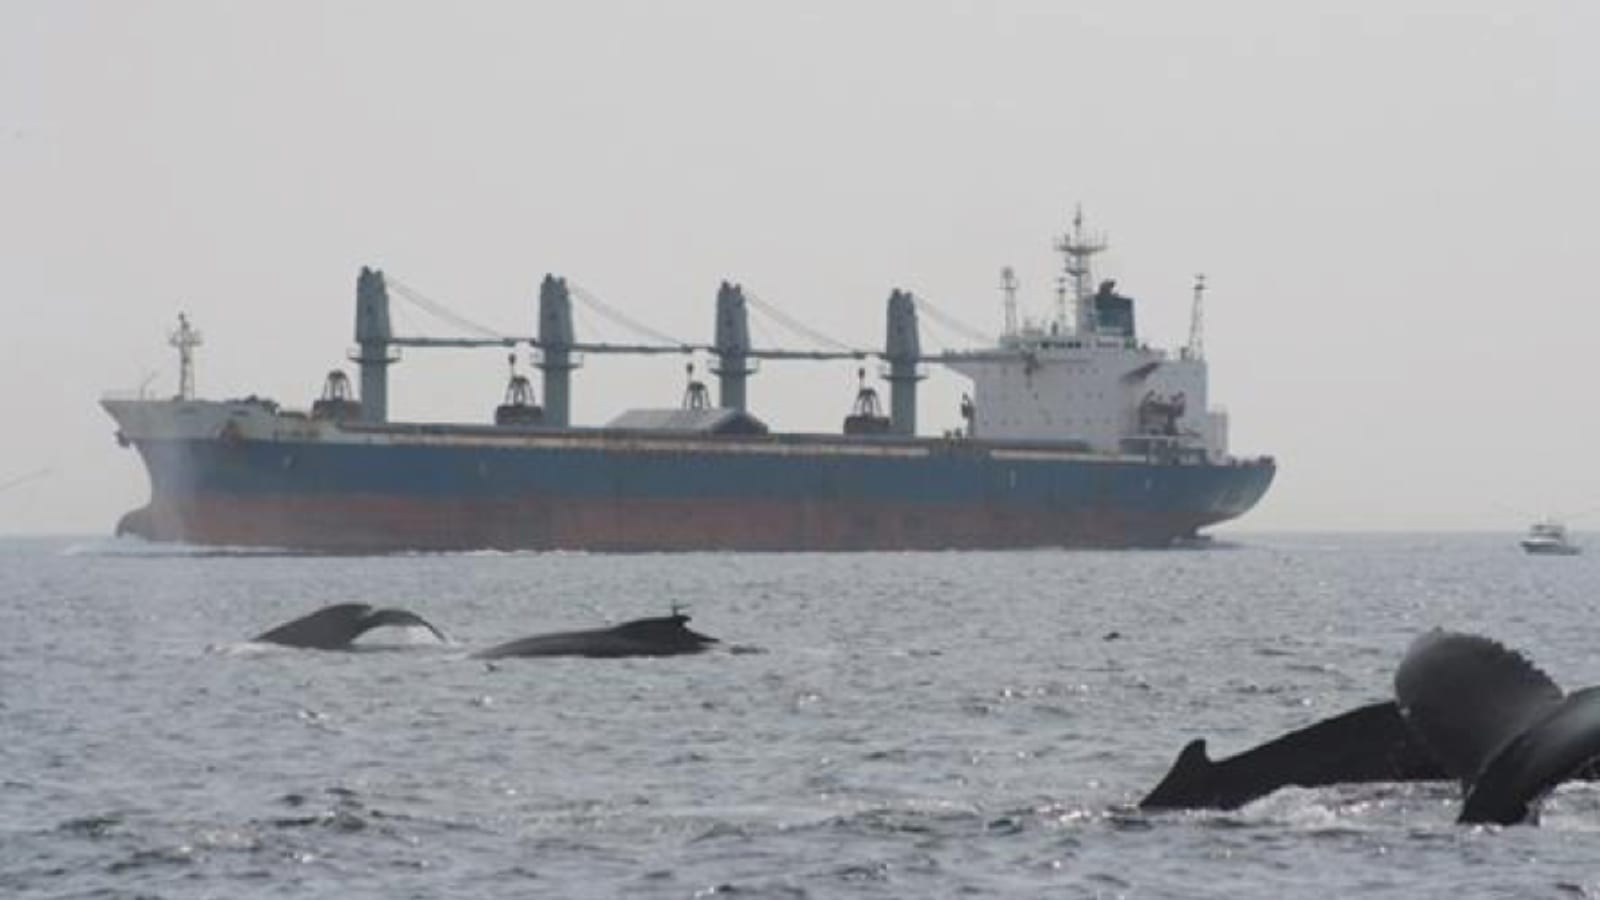 orca whales swimming near a tanker ship